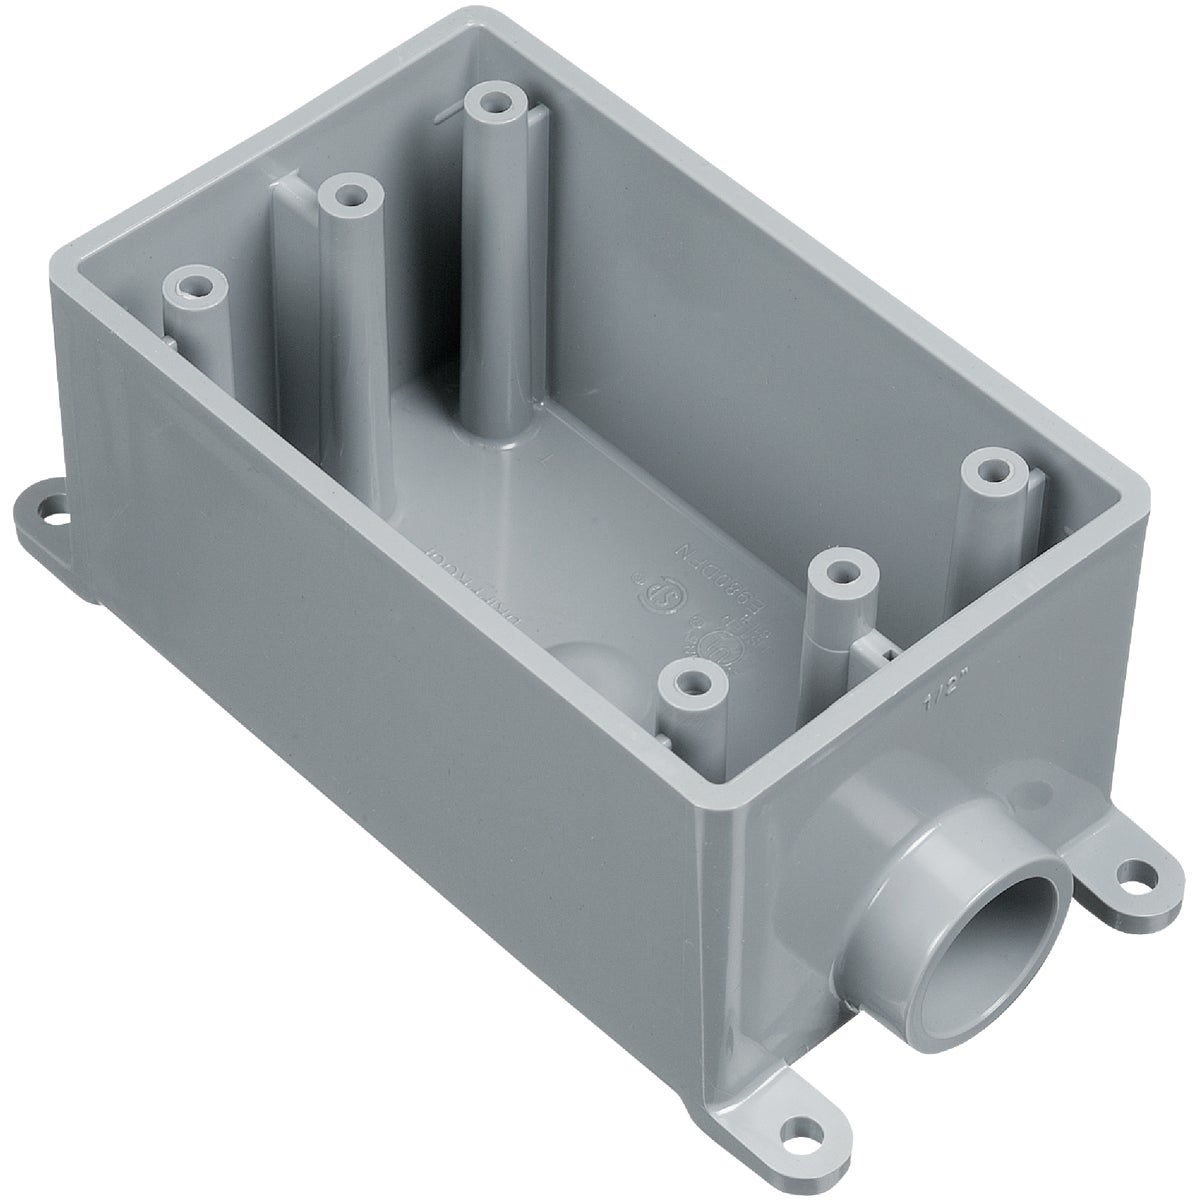 "1/2"" FSE OUTLET BOX - E980DFNCTN by Thomas & Betts"